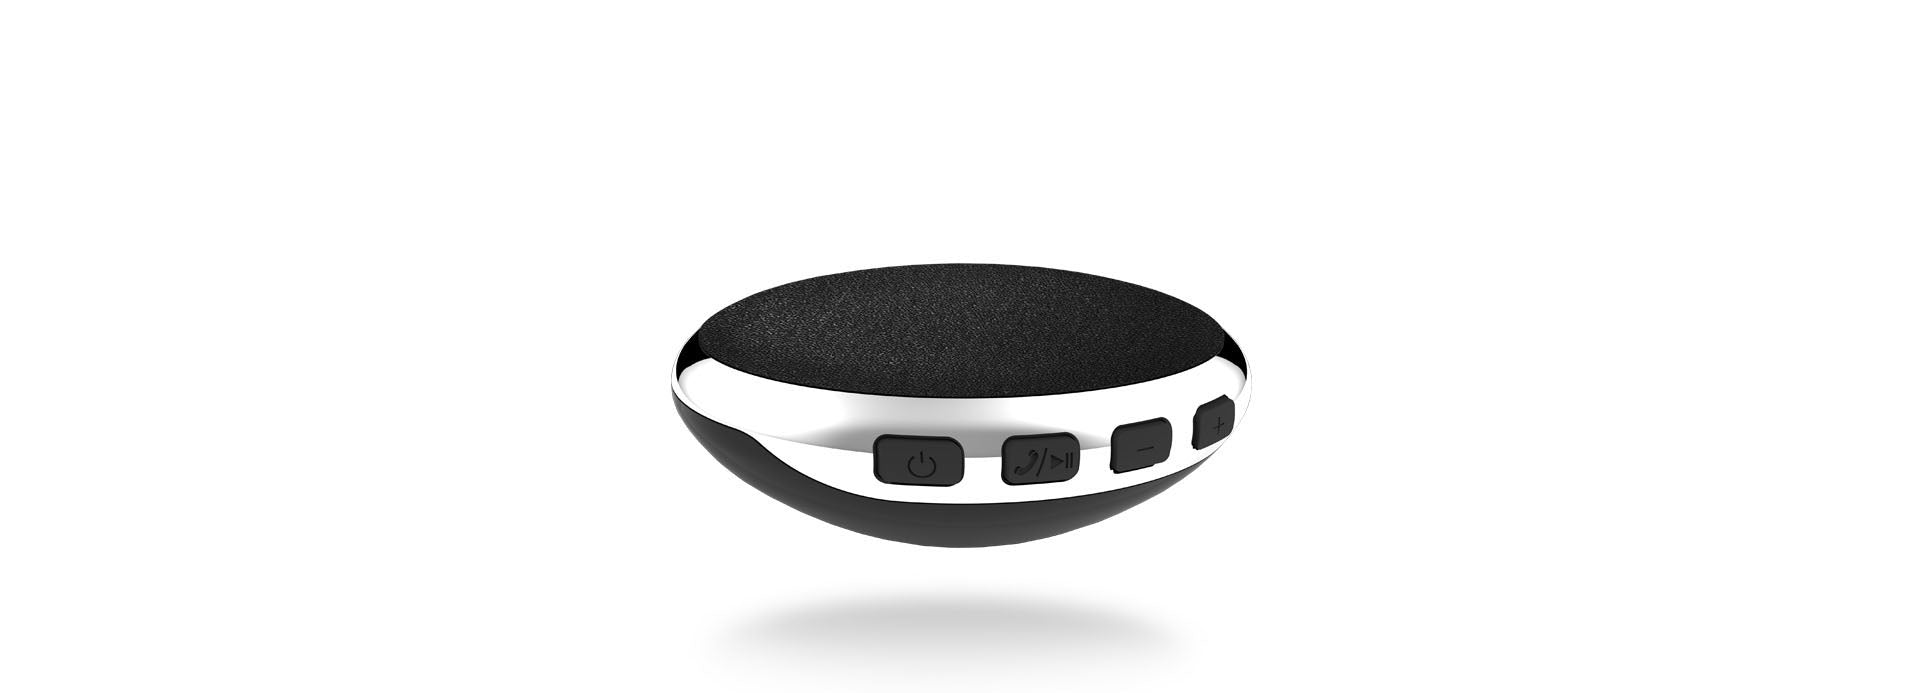 GALAPAD GX-101 Levitating Air Speaker